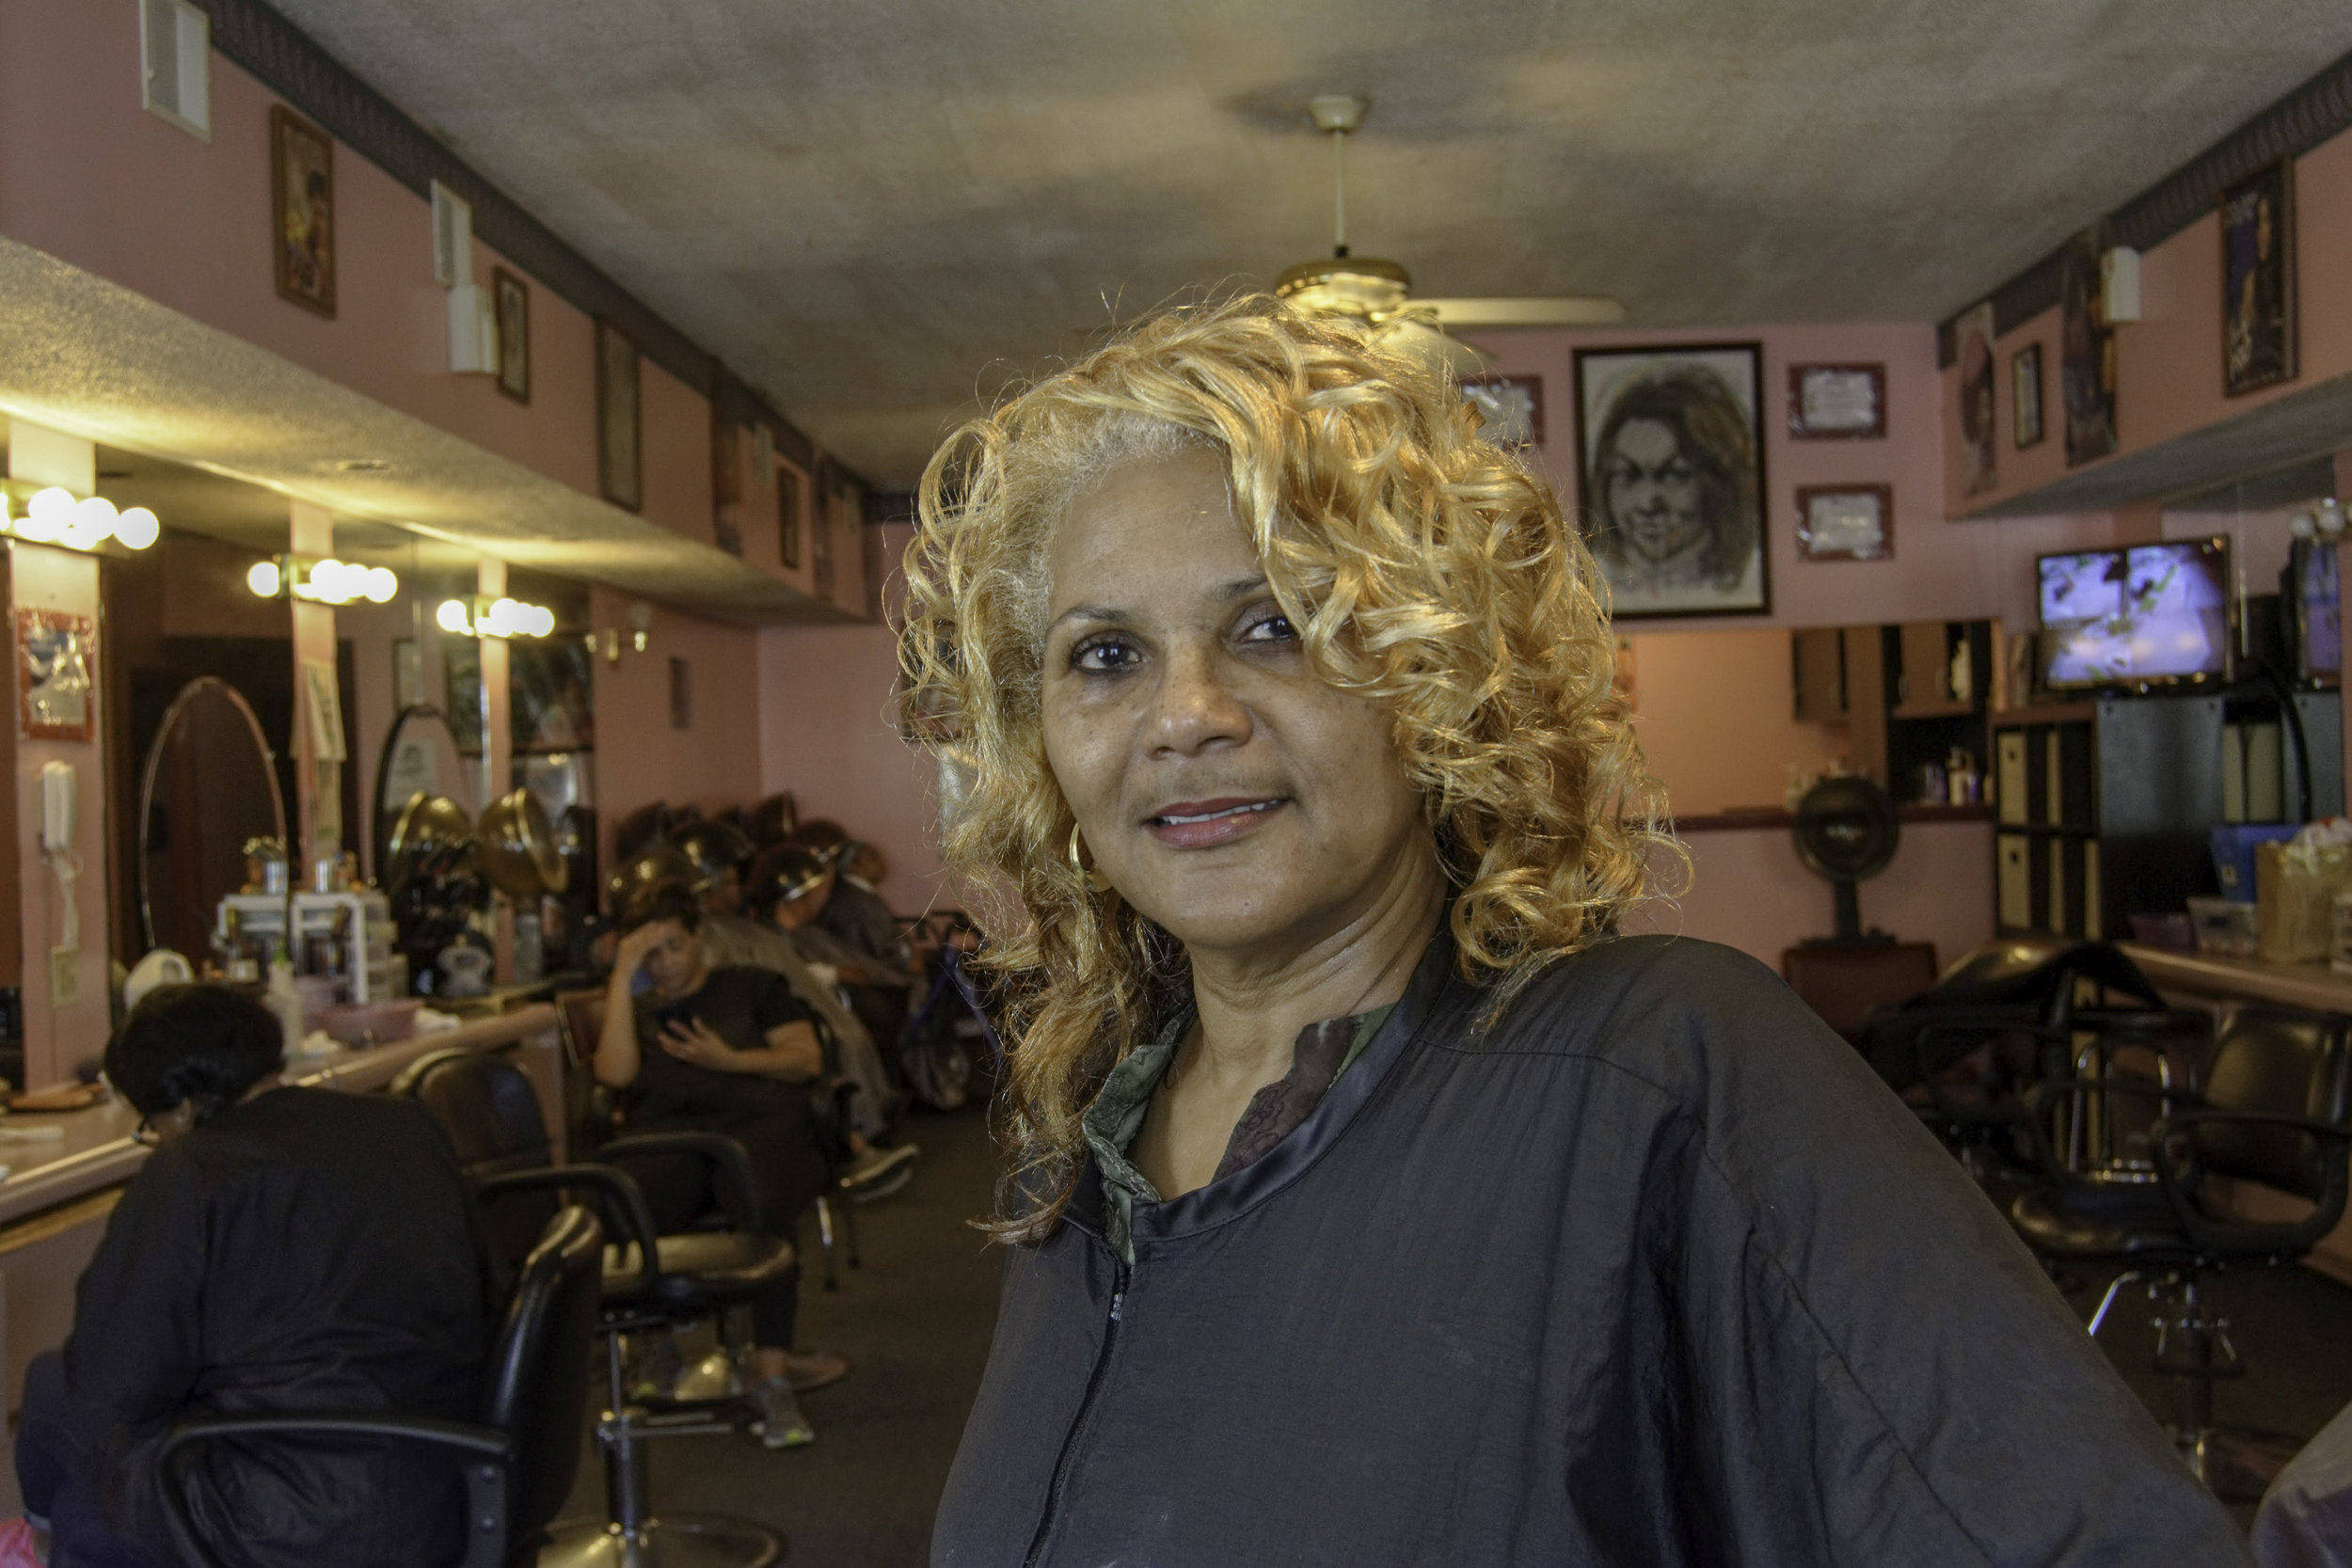 """""""I used to braid a lot children's hair, when their mothers couldn't. I would braid their hair for money, so I could go to Ghost Town, on the river. I'd go to Ghost Town or the skating rink. That's what really started it. I was 8 or 9, braiding hair. I would do that to get some money and go to the amusement park.  What really got me started was when I was in high school. We had to do a co-op. My first job was a job in the kitchen. I couldn't do that one. Then I got a co-op at Johnson's Beauty Supply. I was 15 years old and I was working there as an receptionist and a shipping clerk. I shipped all the orders. Someone would call the store and order. I would get the orders ready and ship the hair products out to different beauty salons. There wasn't that many supply stores. That's when I started getting into hair because I worked at that supply store.  What made me decide to open up my own shop? I was tired of moving from shop to shop. Most hair dressers and barbers are like gypsies, we're moving all the time. My two sisters are hair stylists, too. So, my thought was to step out and be the one to open a shop because I'm the older sister. My sisters have been with me since we were together. We've been here, on this corner, since '92. So, that's 26 years. I've been a hairdresser for 34 years.  Opening up was the hardest. I had a hard time. My credit was good. Wanna talk about redlining? My husband had a good job. We went to the Citizens Bank, my score was 800. Don't you know that I was denied out here in the West End? I went out east, where I live at, and I get approved that day. Ain't that something? I went through a lot.  When I opened up, the plumbing inspector didn't like my plumber. Don't you know that I had to jack up my floor 6 times? All because they didn't like each other. I wasn't even in it. Every time I had a different plumber, the inspector needed to see my pipes. That was me spending more money cause he didn't like my plumber. I've been caught up in all kind"""